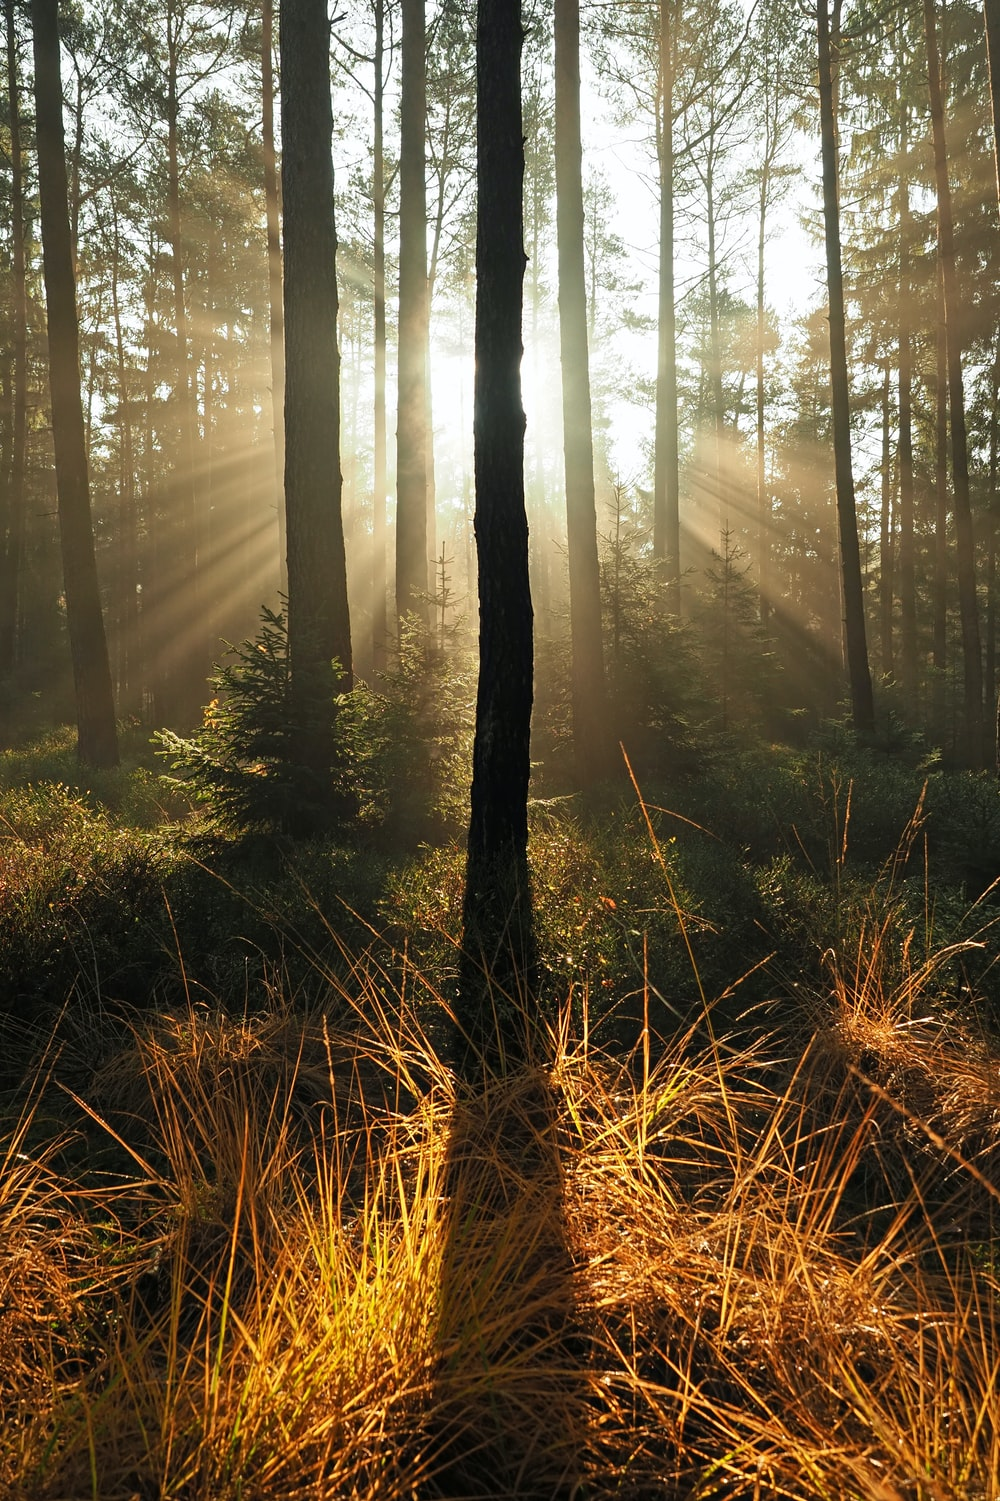 forest trees at daytime